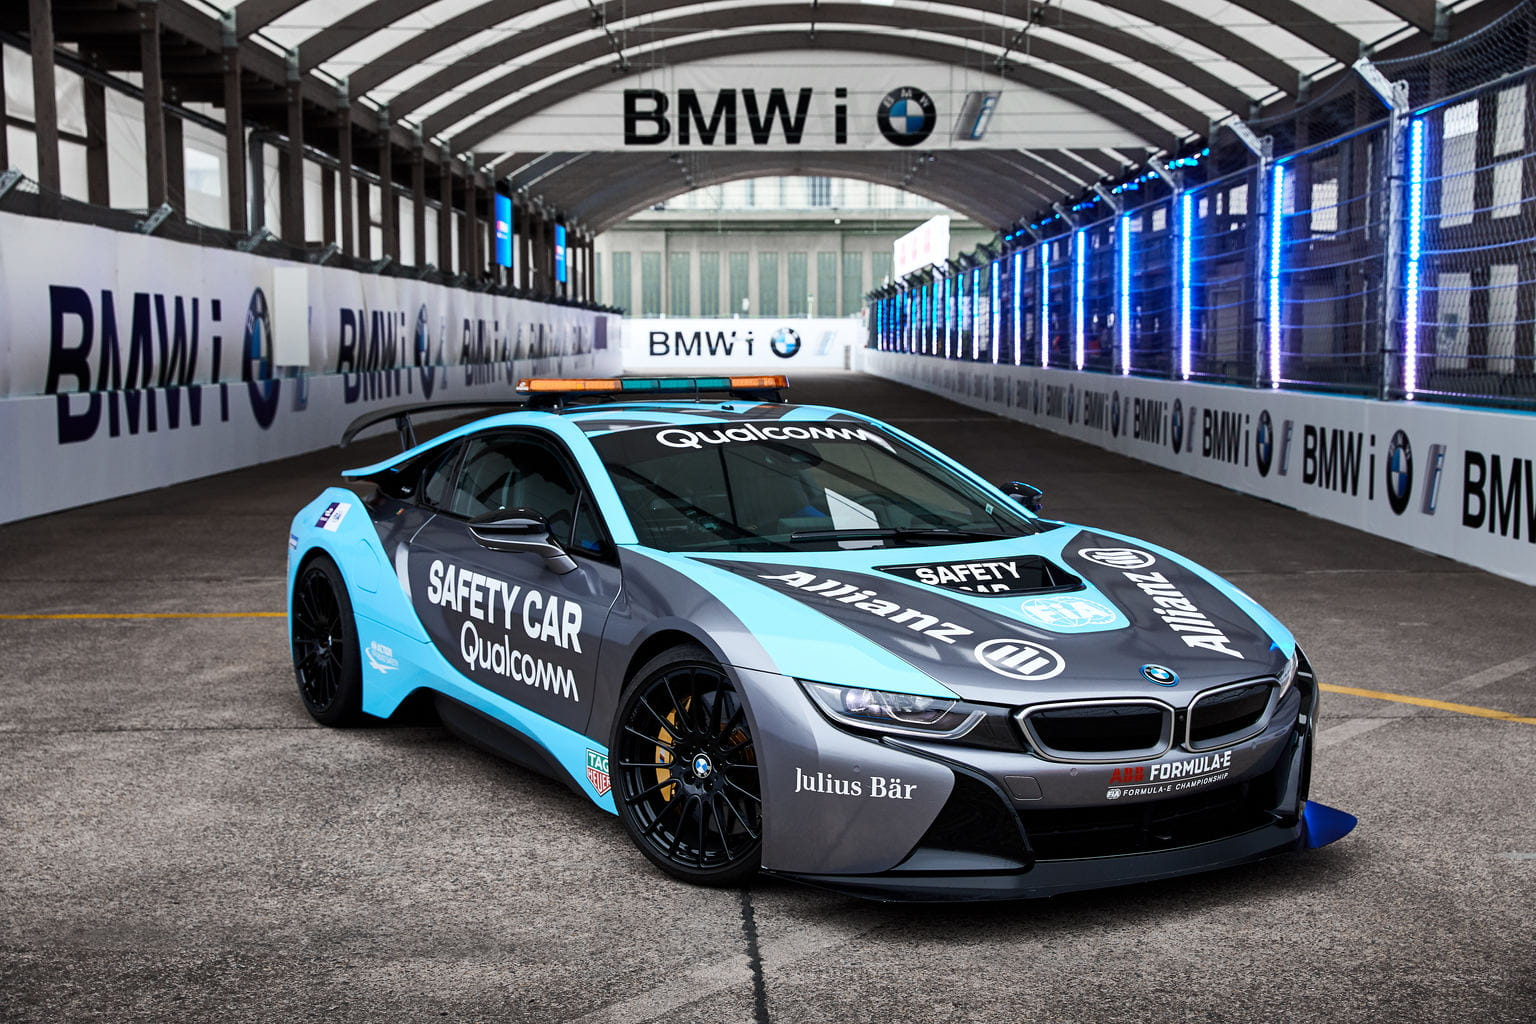 Not only a competitor, The BMW i8 is the official safety car of FIA Formula E